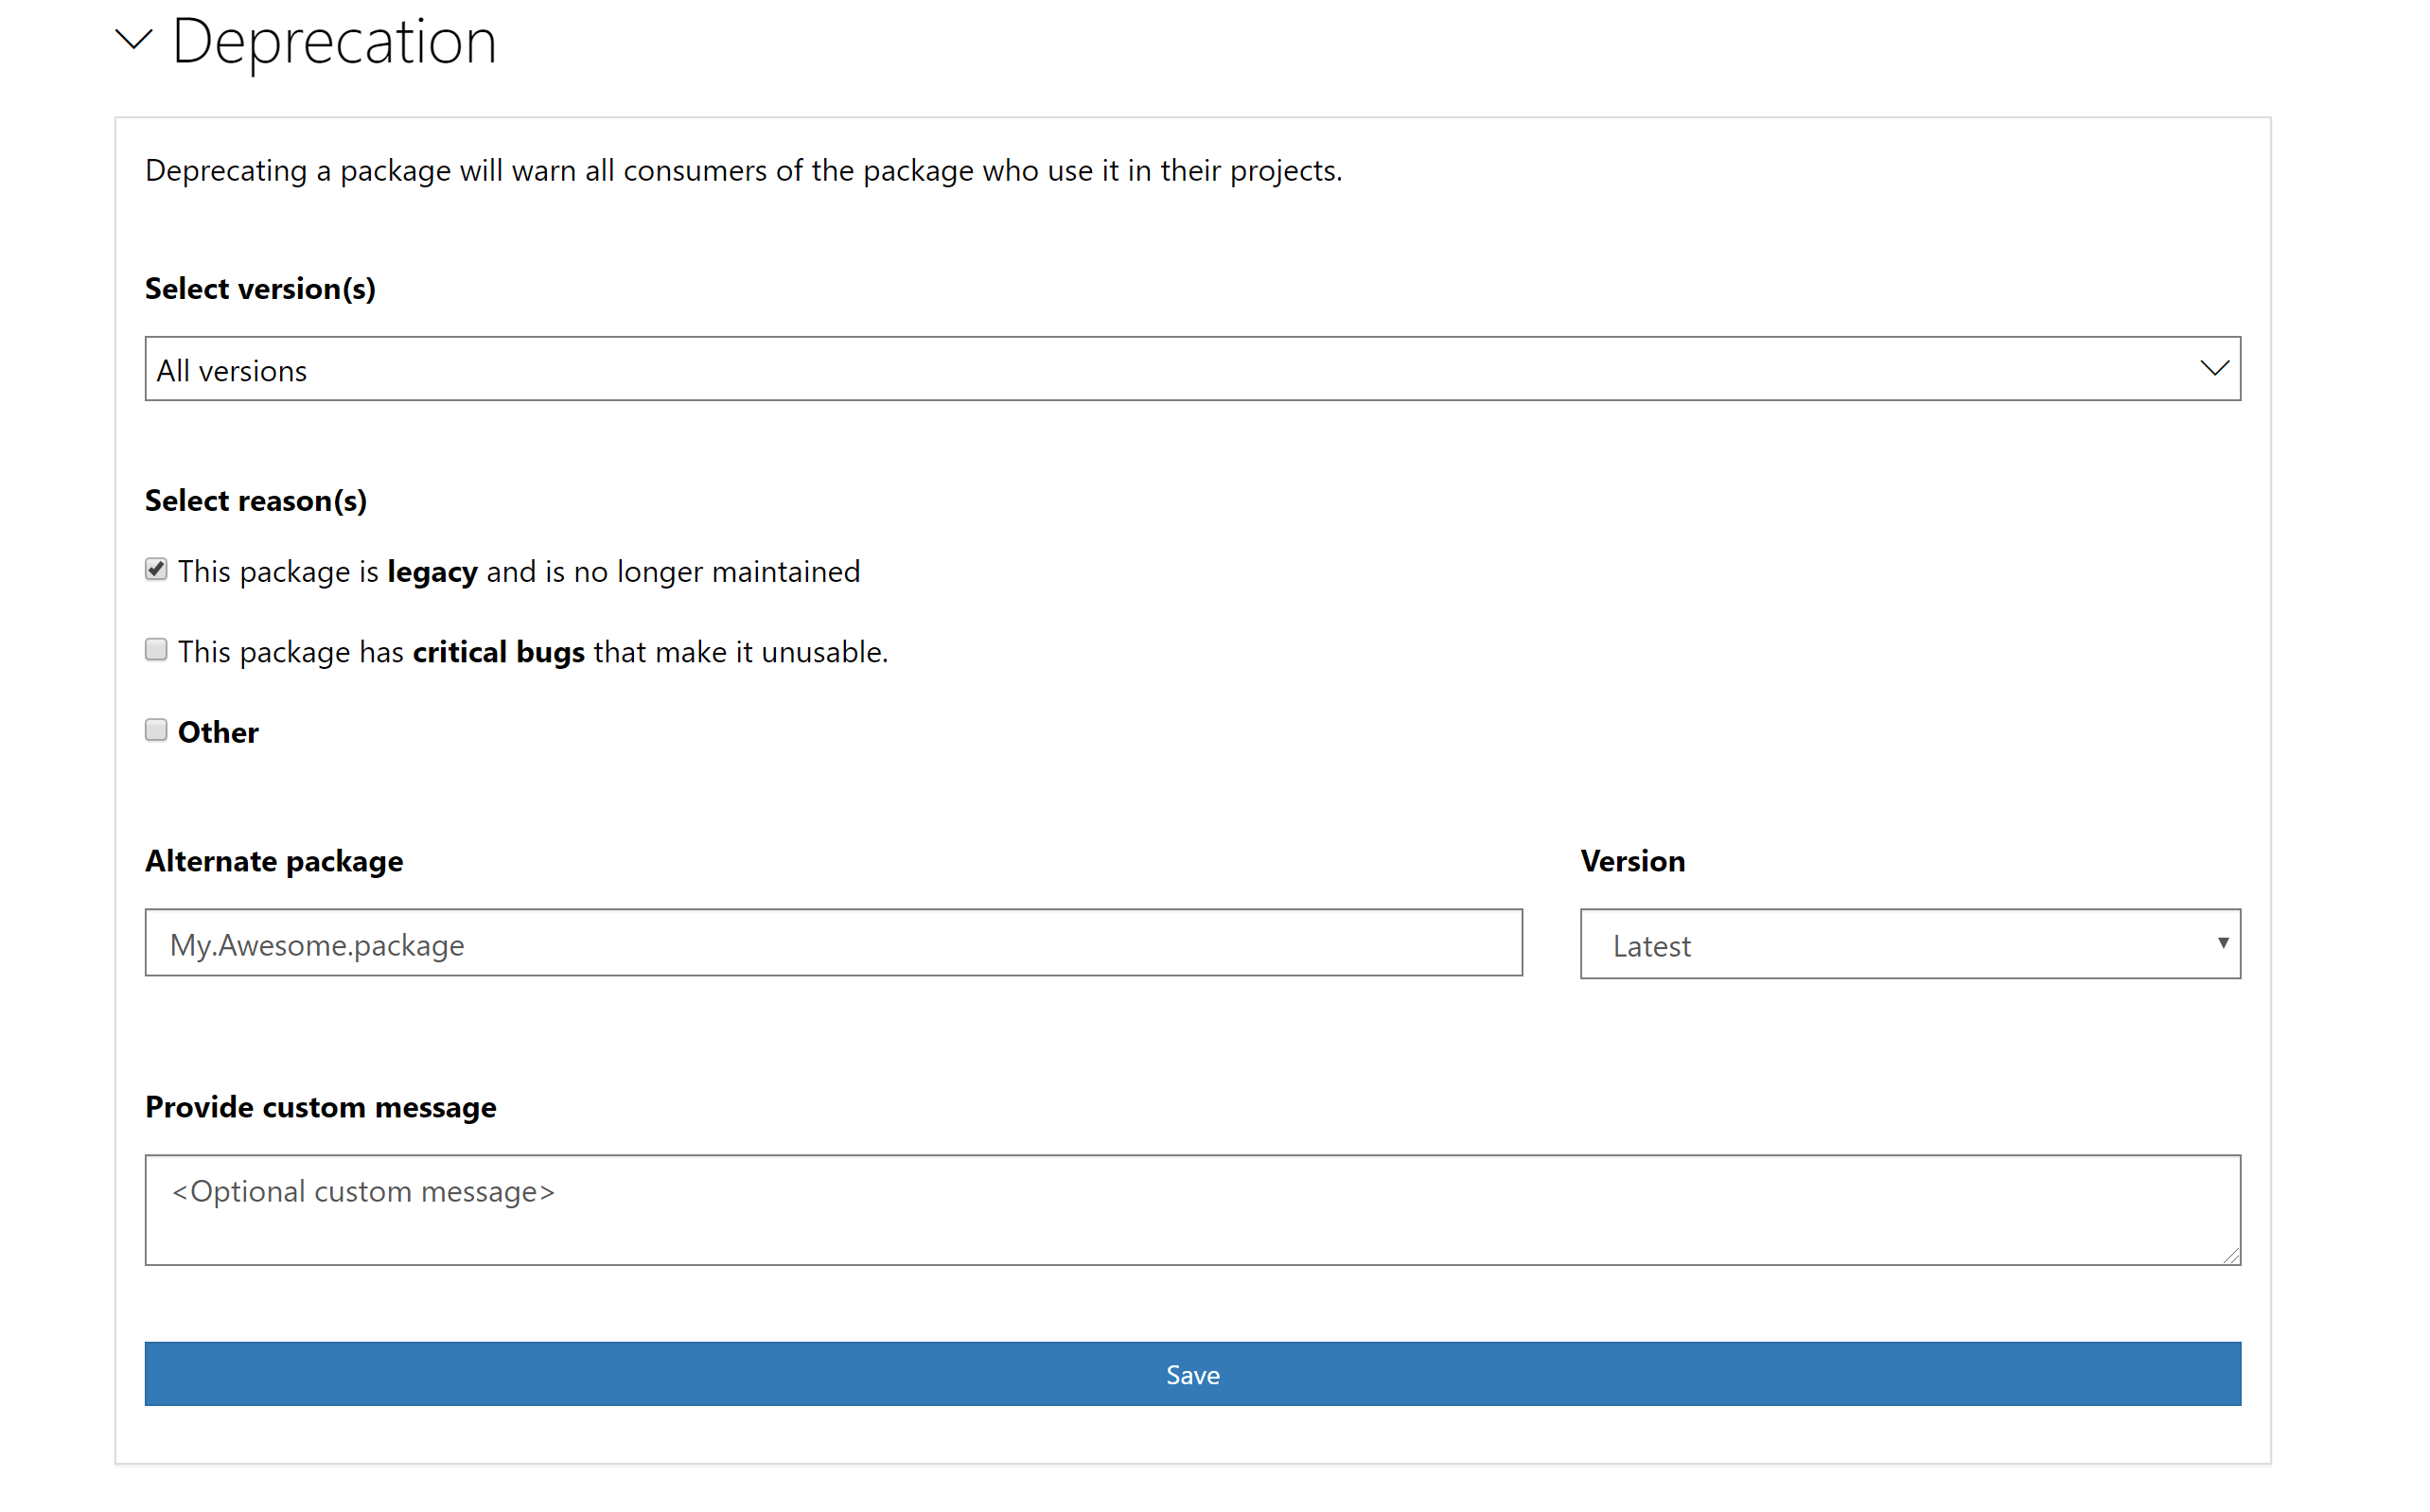 manage package option